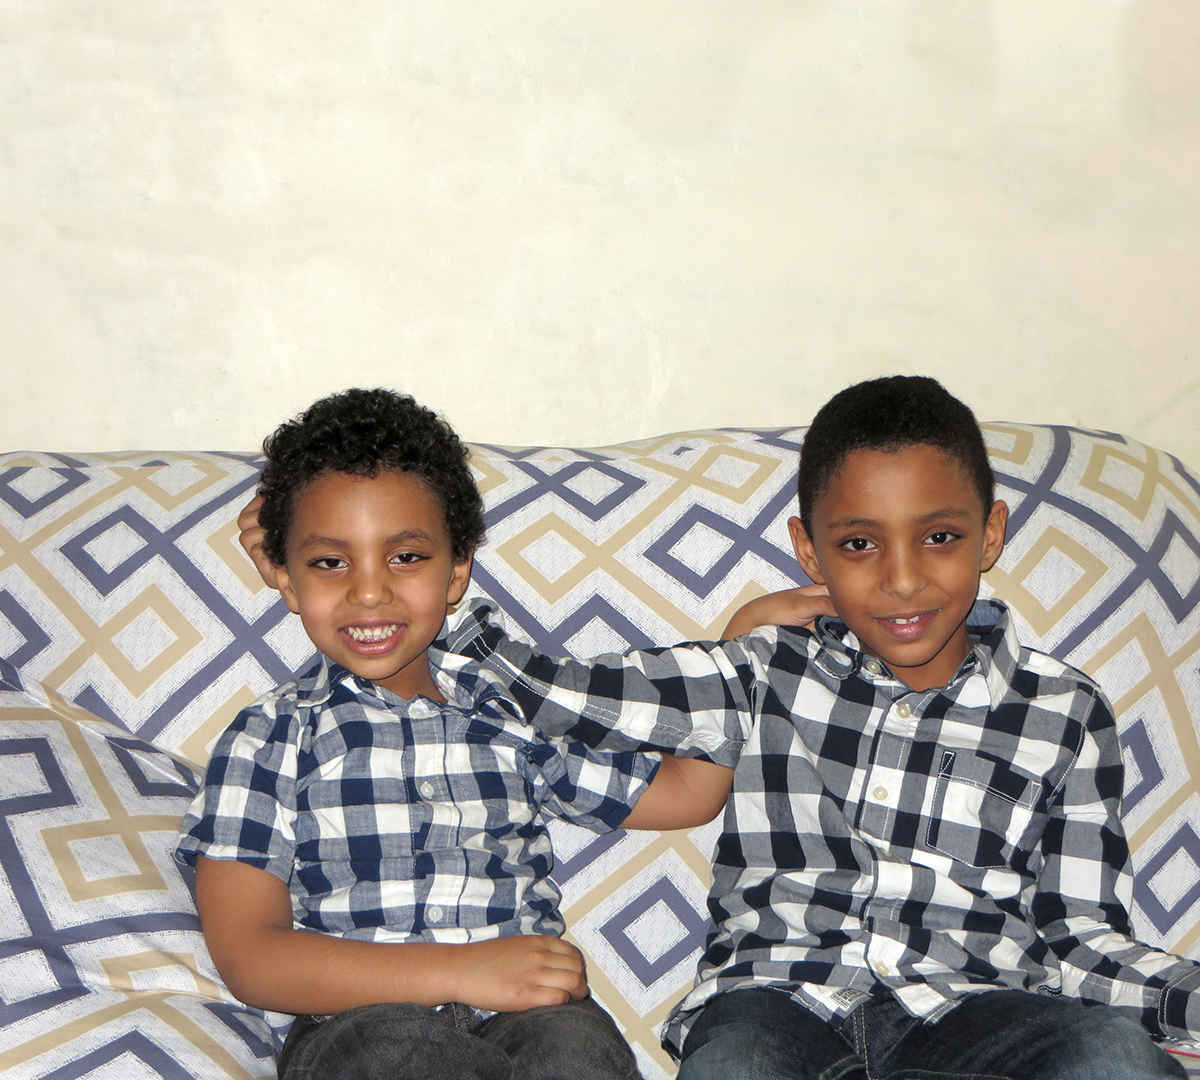 Tonight, these two boys will share a twin mattress on the floor next to their parents' bed. image